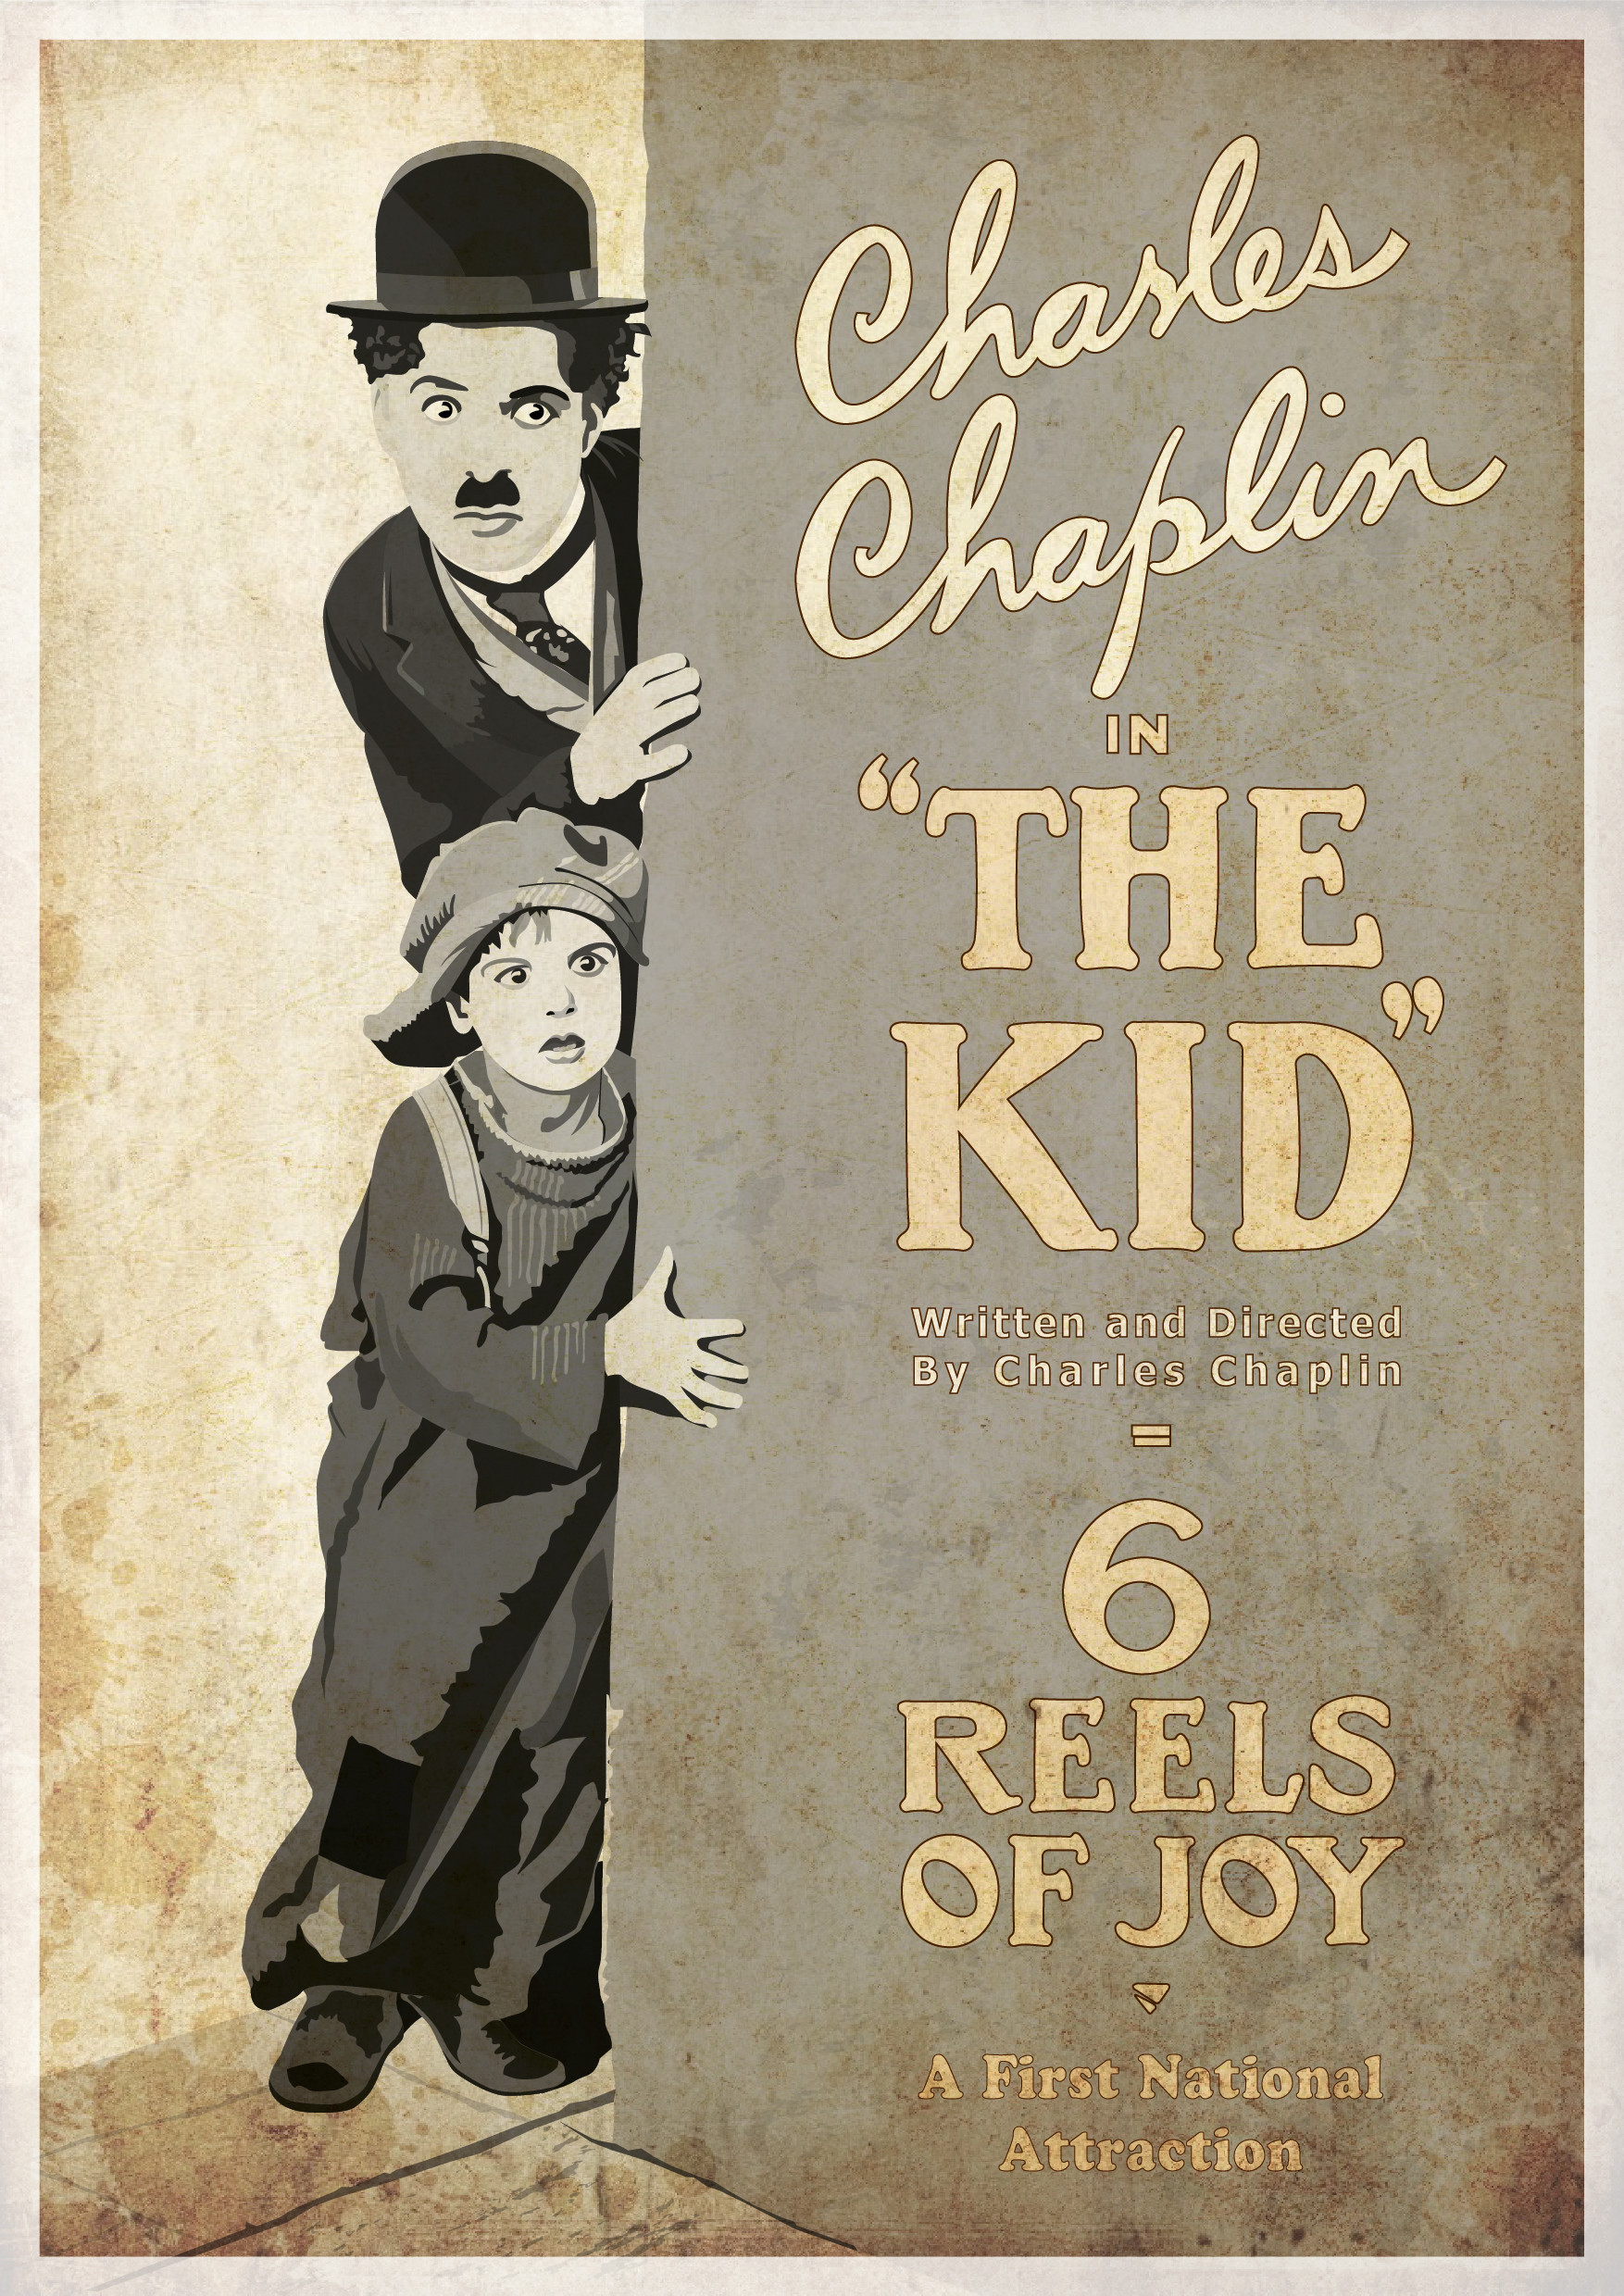 Rajesh sawant charlie chap the kid poster 01